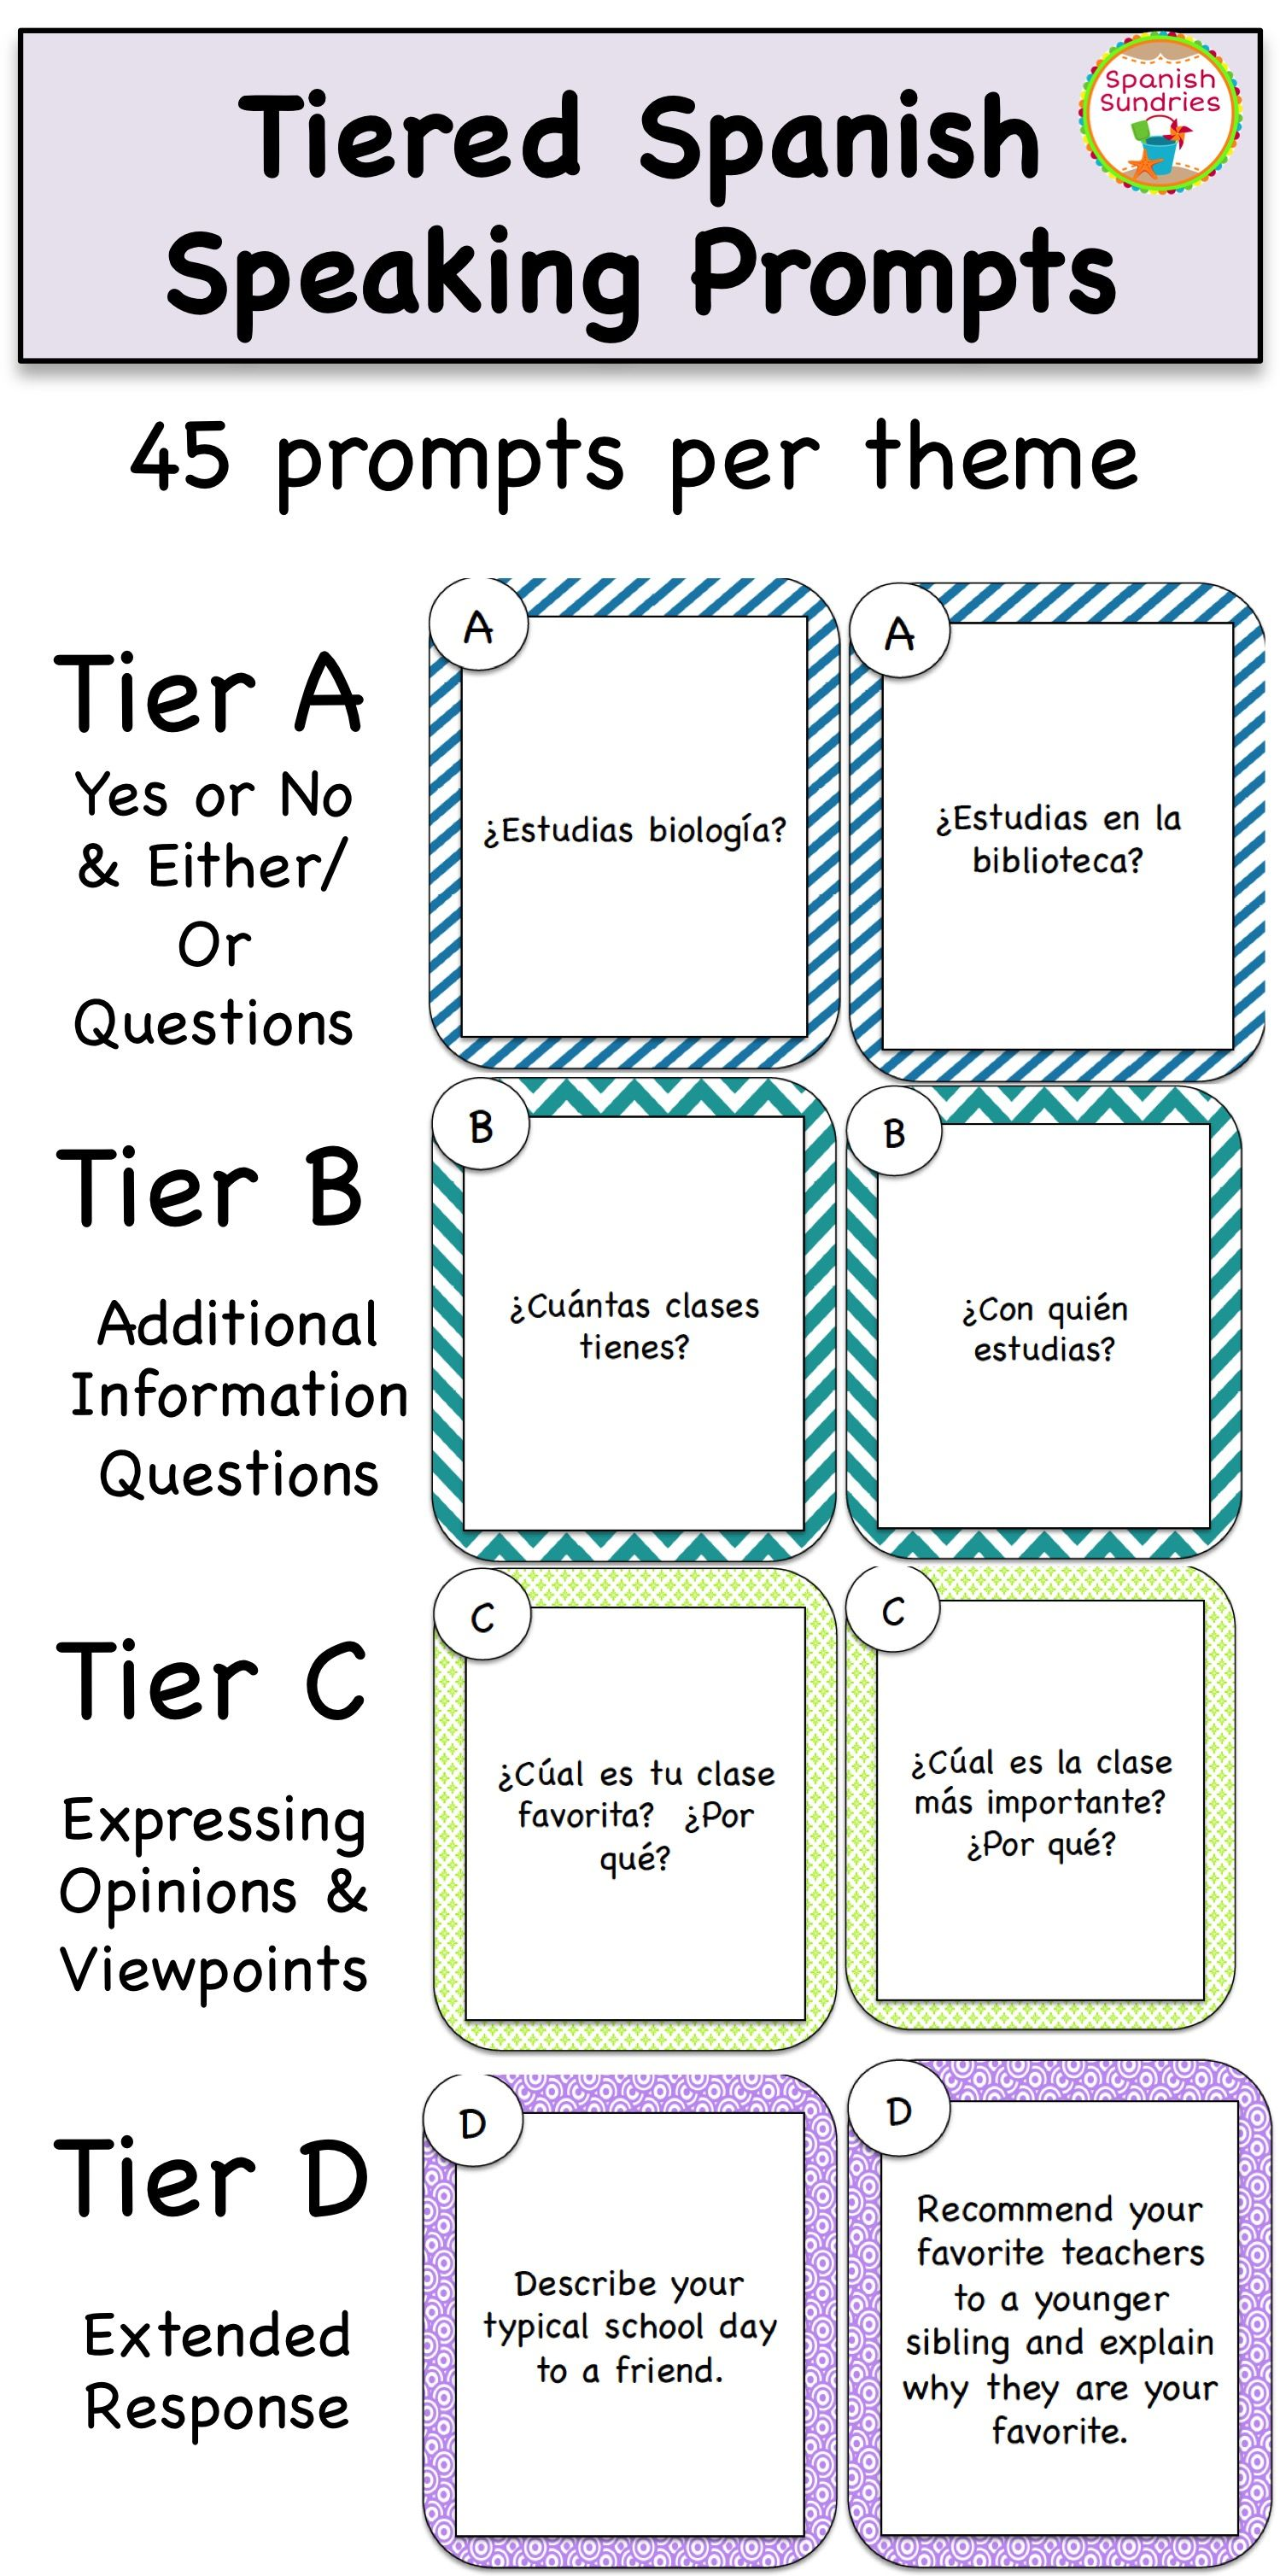 tiered spanish speaking prompts by theme spanish learning tiered spanish speaking prompts by theme